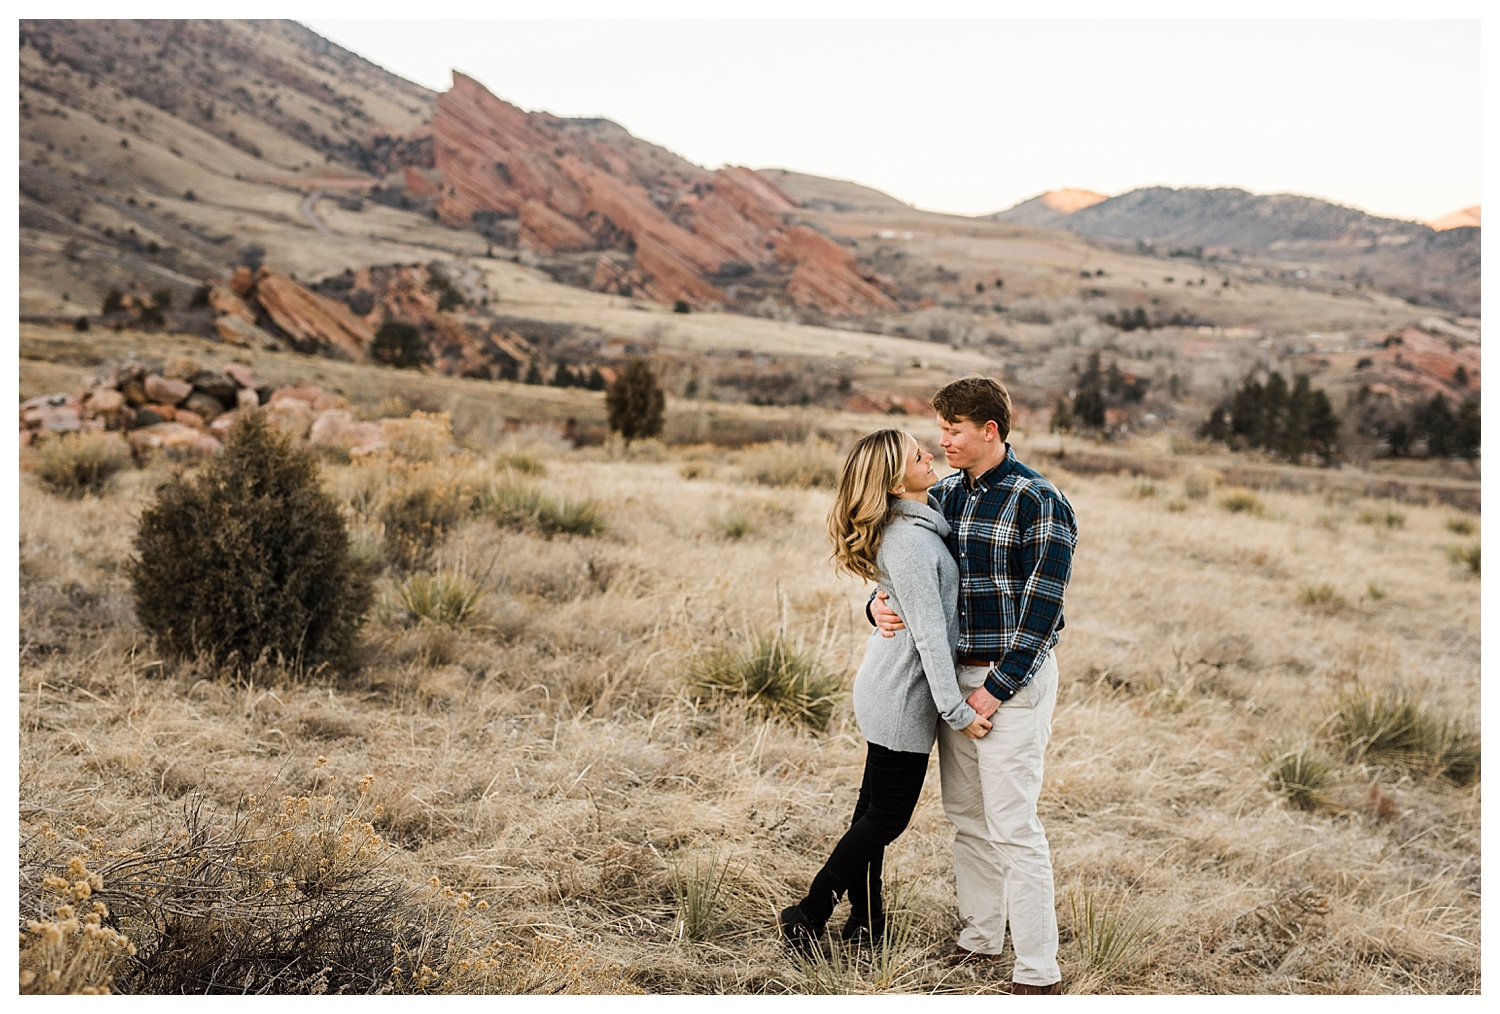 Mt_Falcon_Engagement_Session_Colorado_Engaged_Photography_Apollo_Fields_Wedding_Photographers_009.jpg